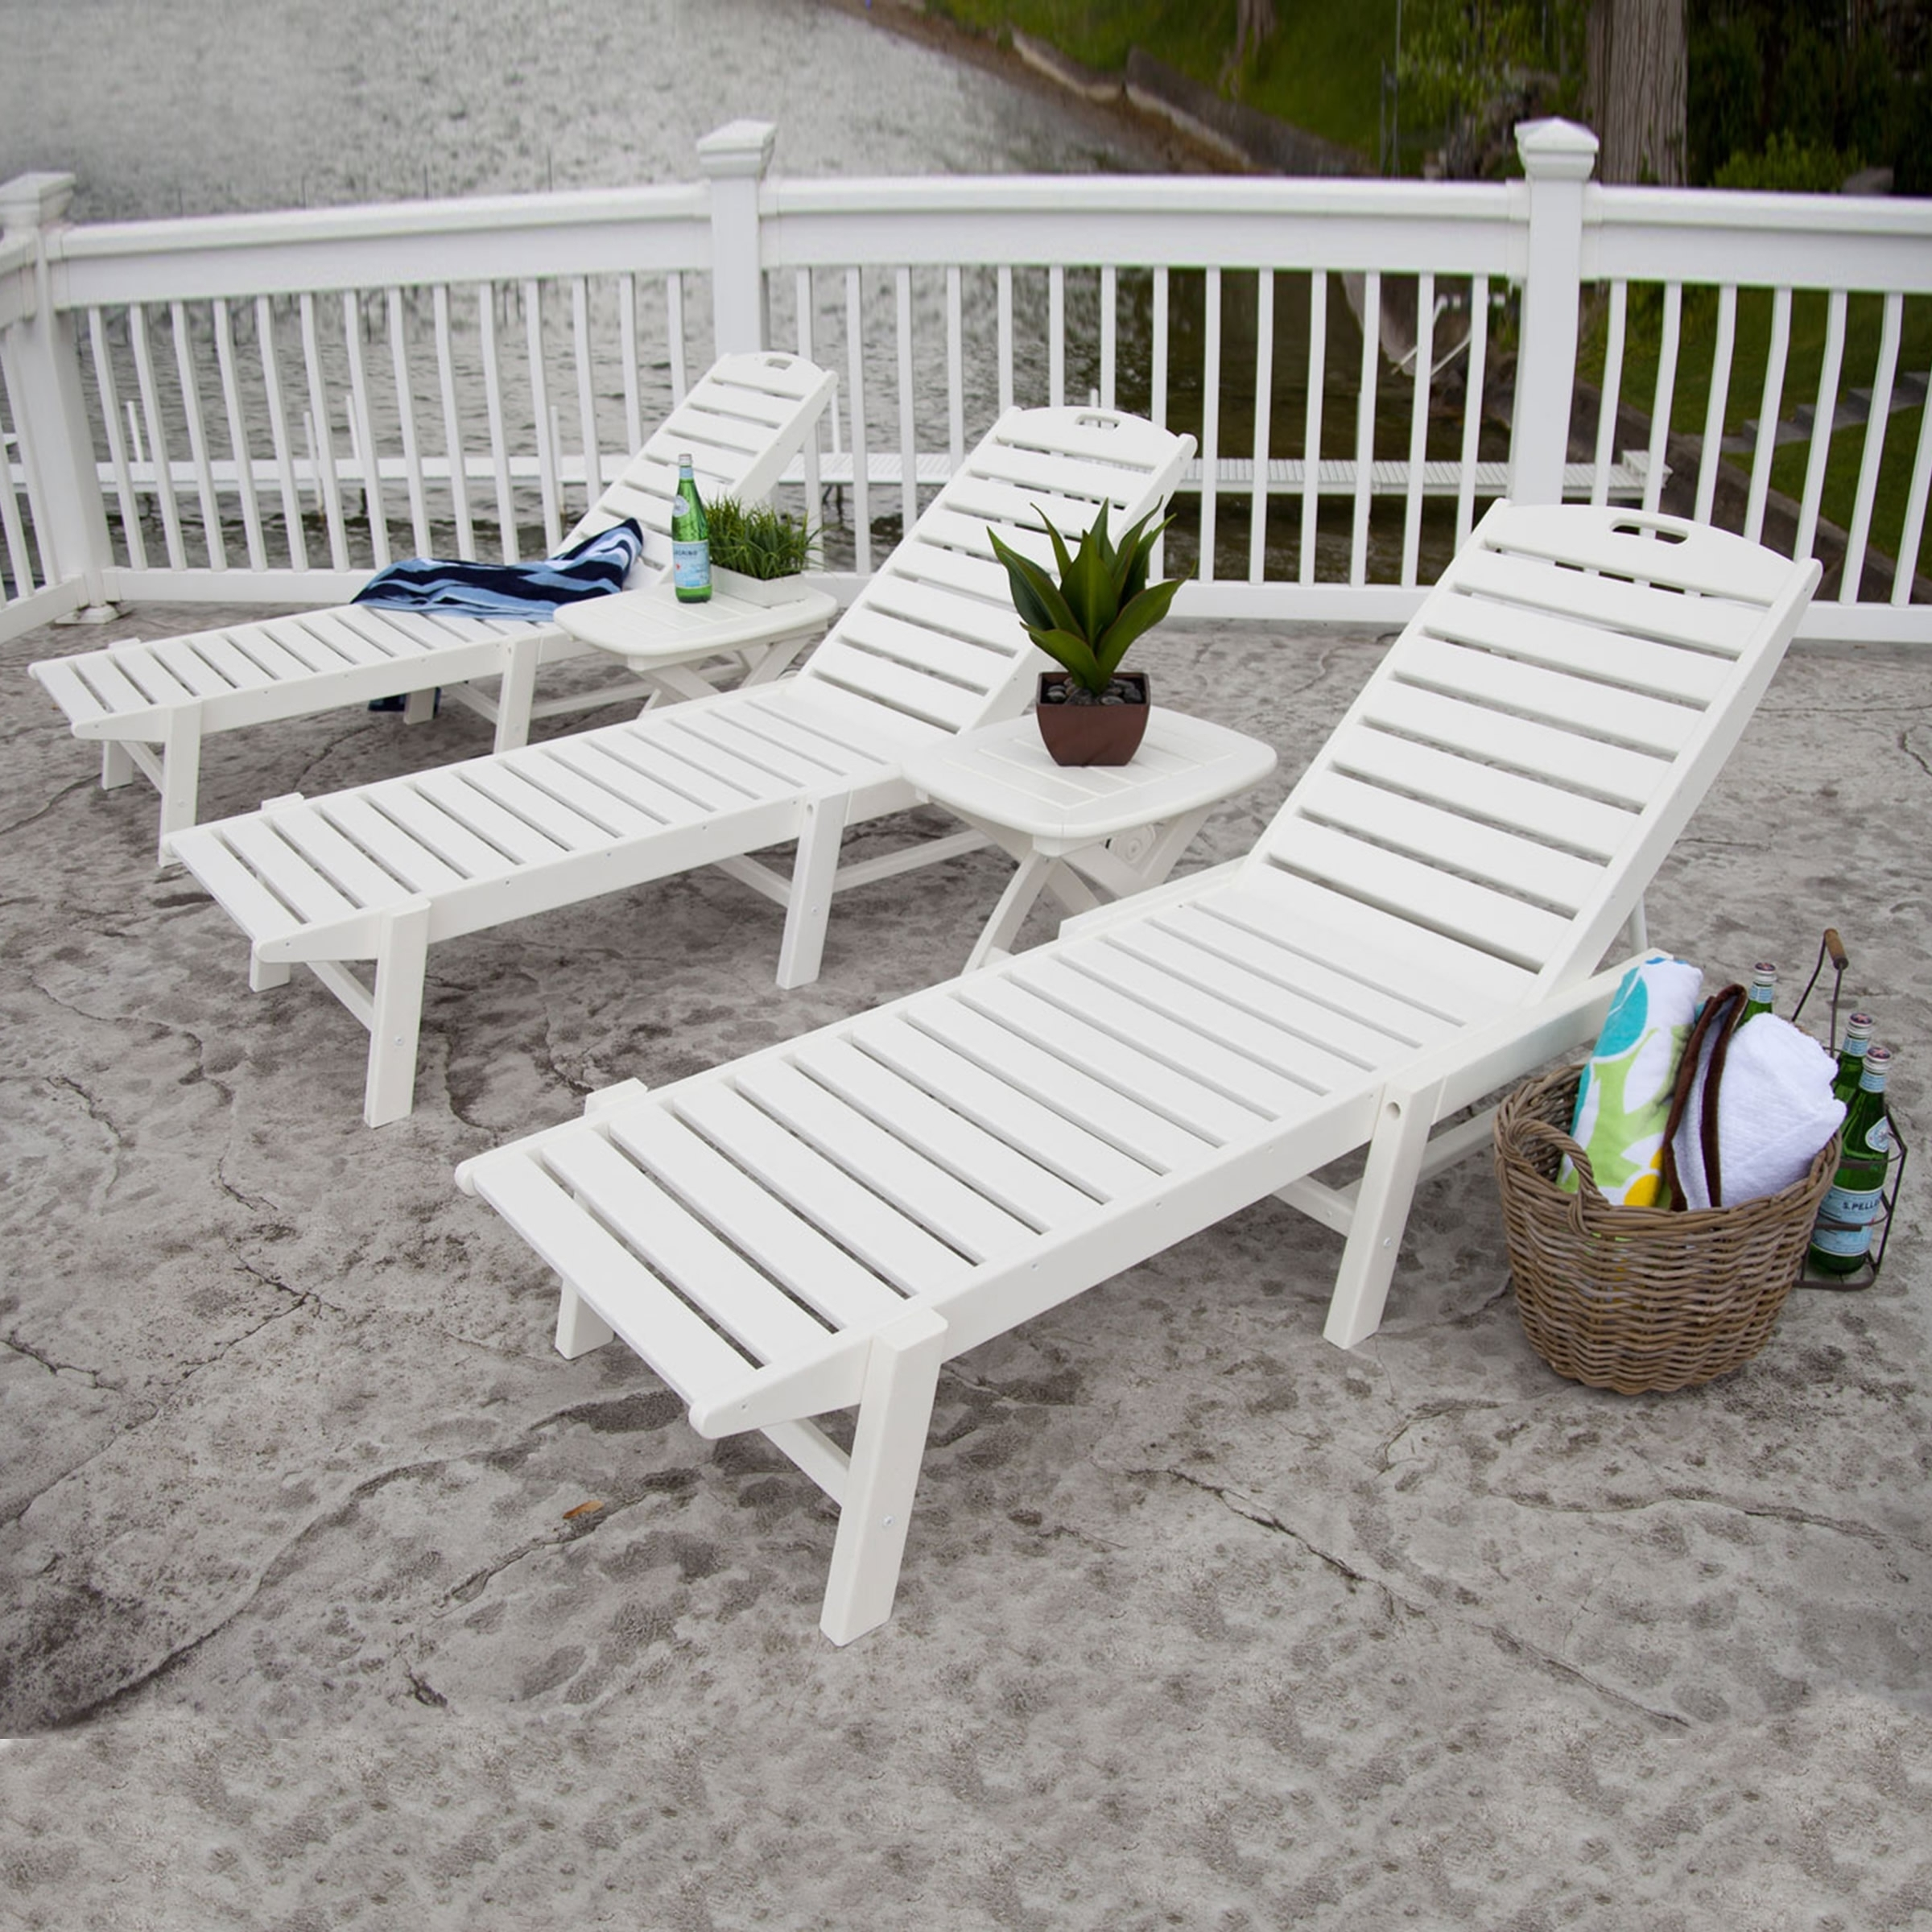 Polywood Chaise Lounges Inside Fashionable Polywood Nautical Wheeled Chaise Lounge Set (View 4 of 15)